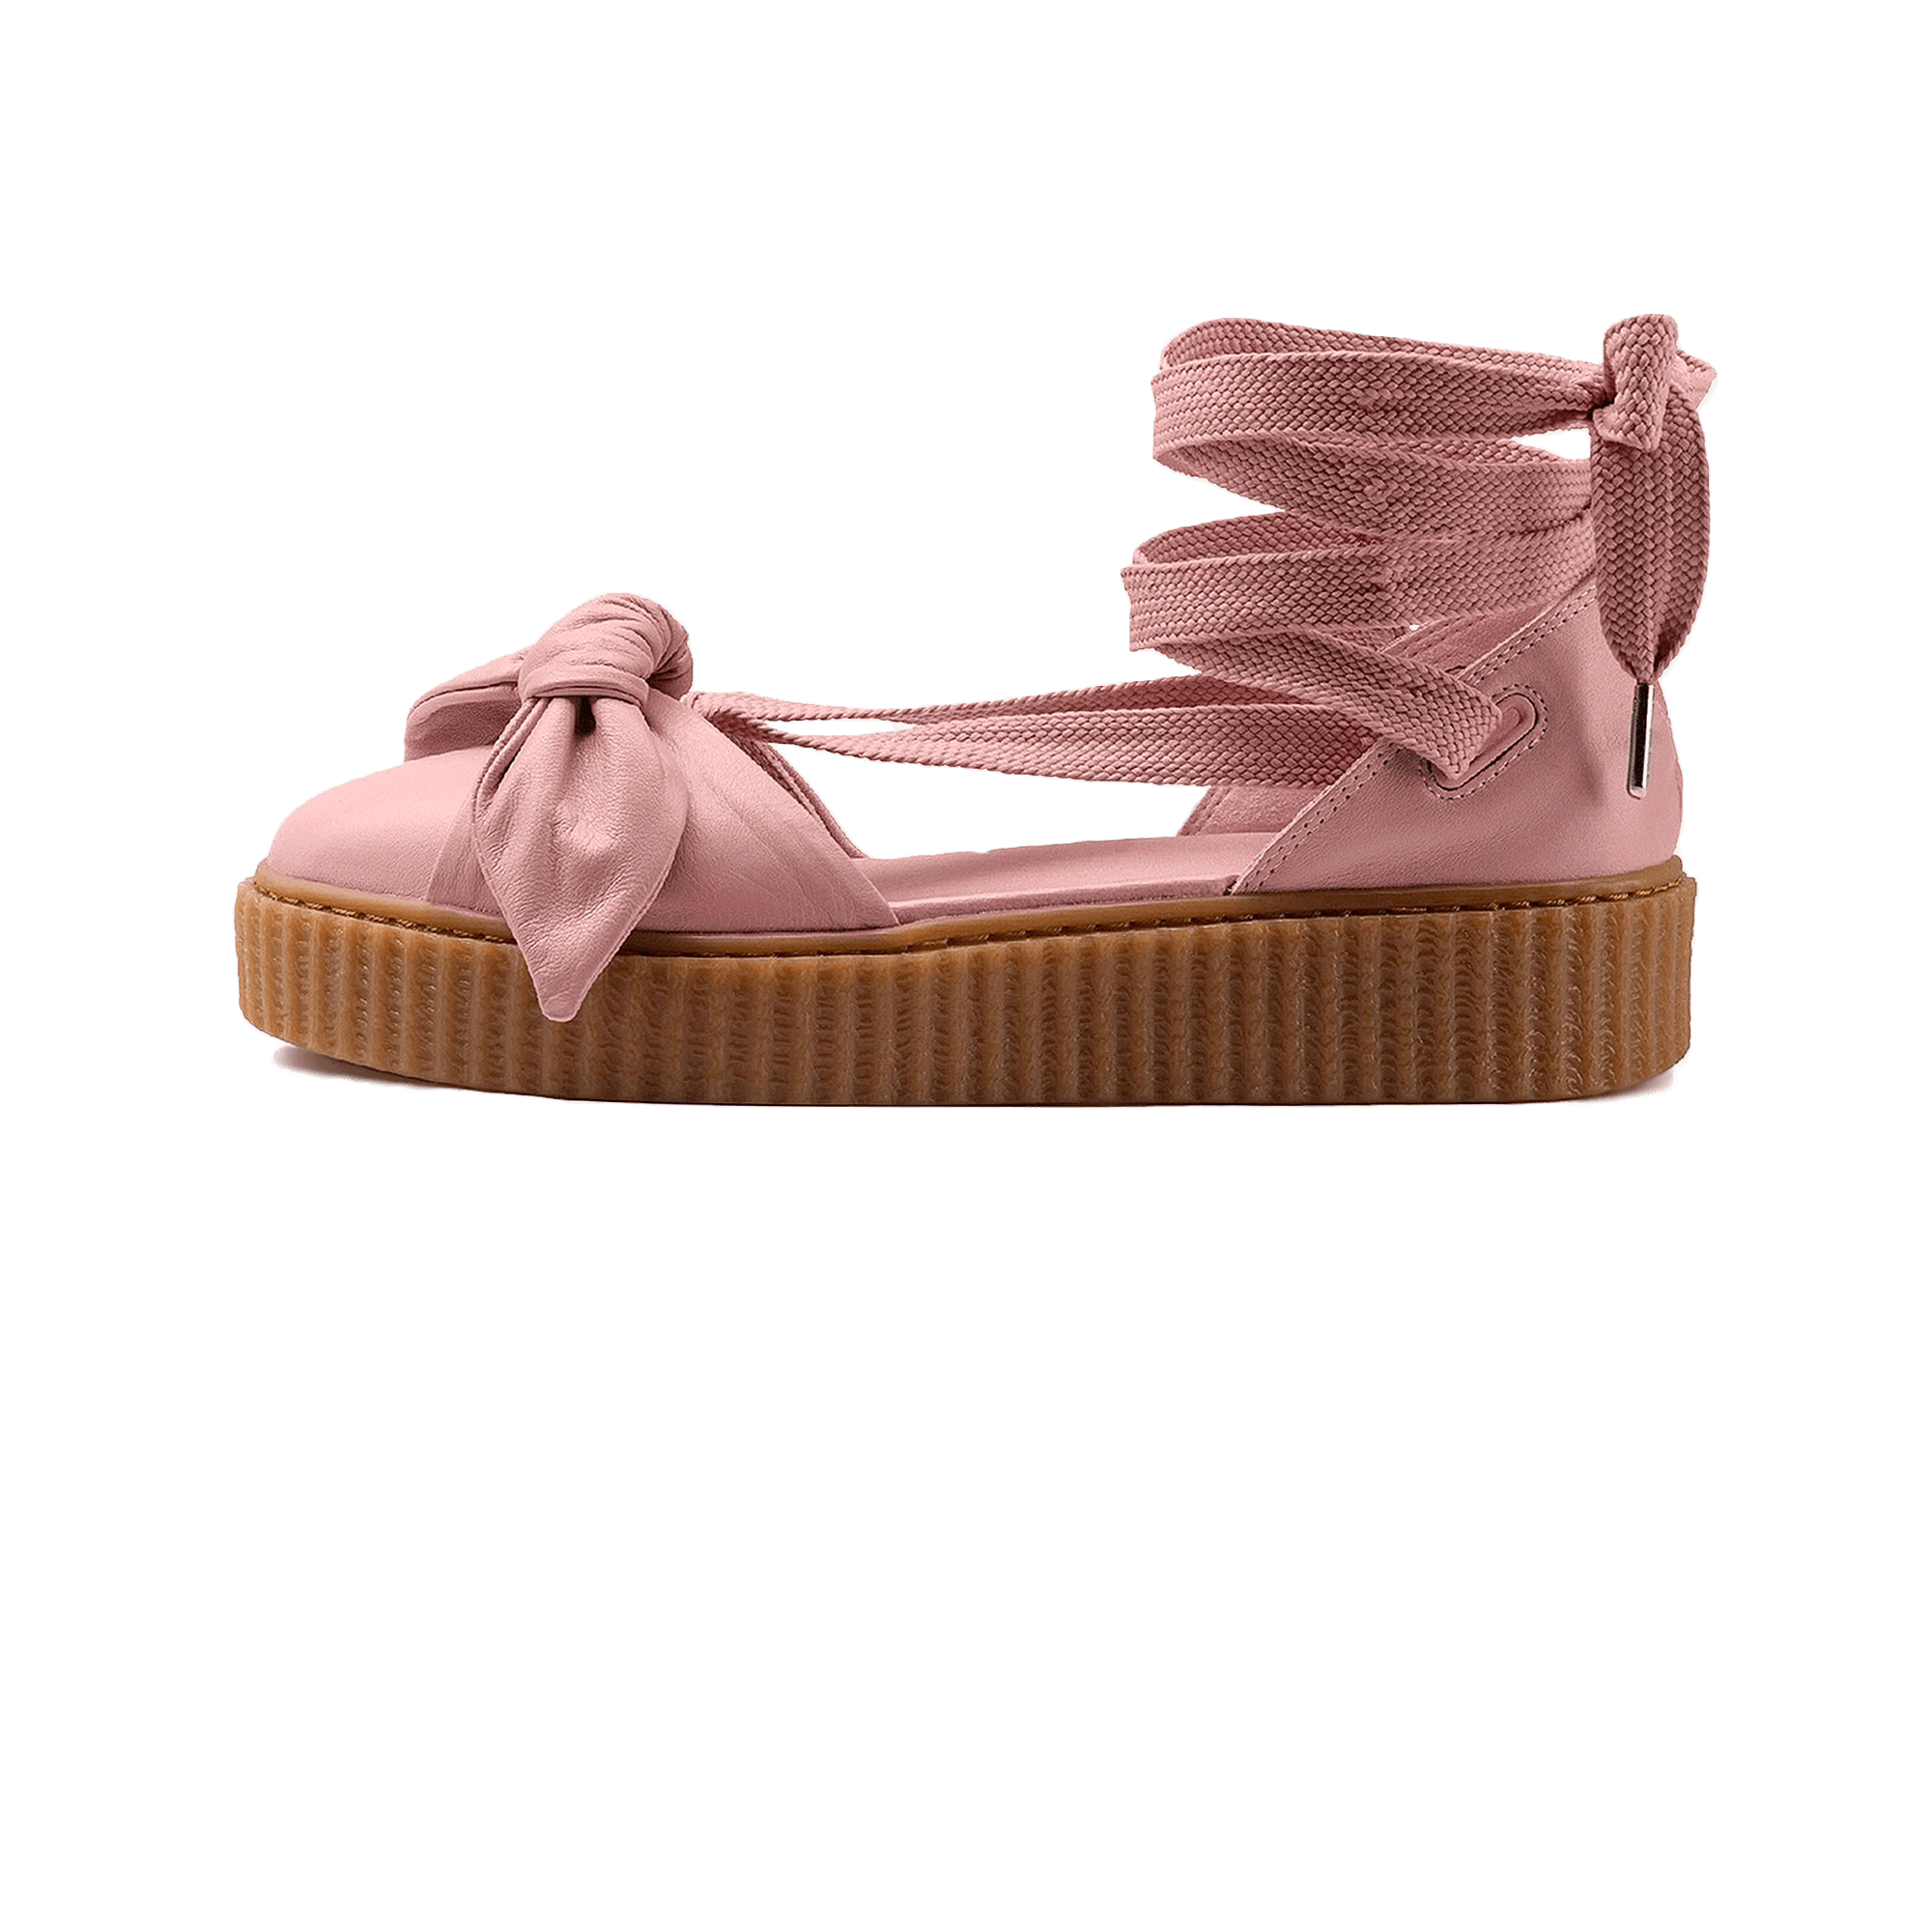 huge selection of 3dd63 9d2ee Puma Fenty by Rihanna Bow Creeper Sandal pink/gum - Woman | Holypopstore.com